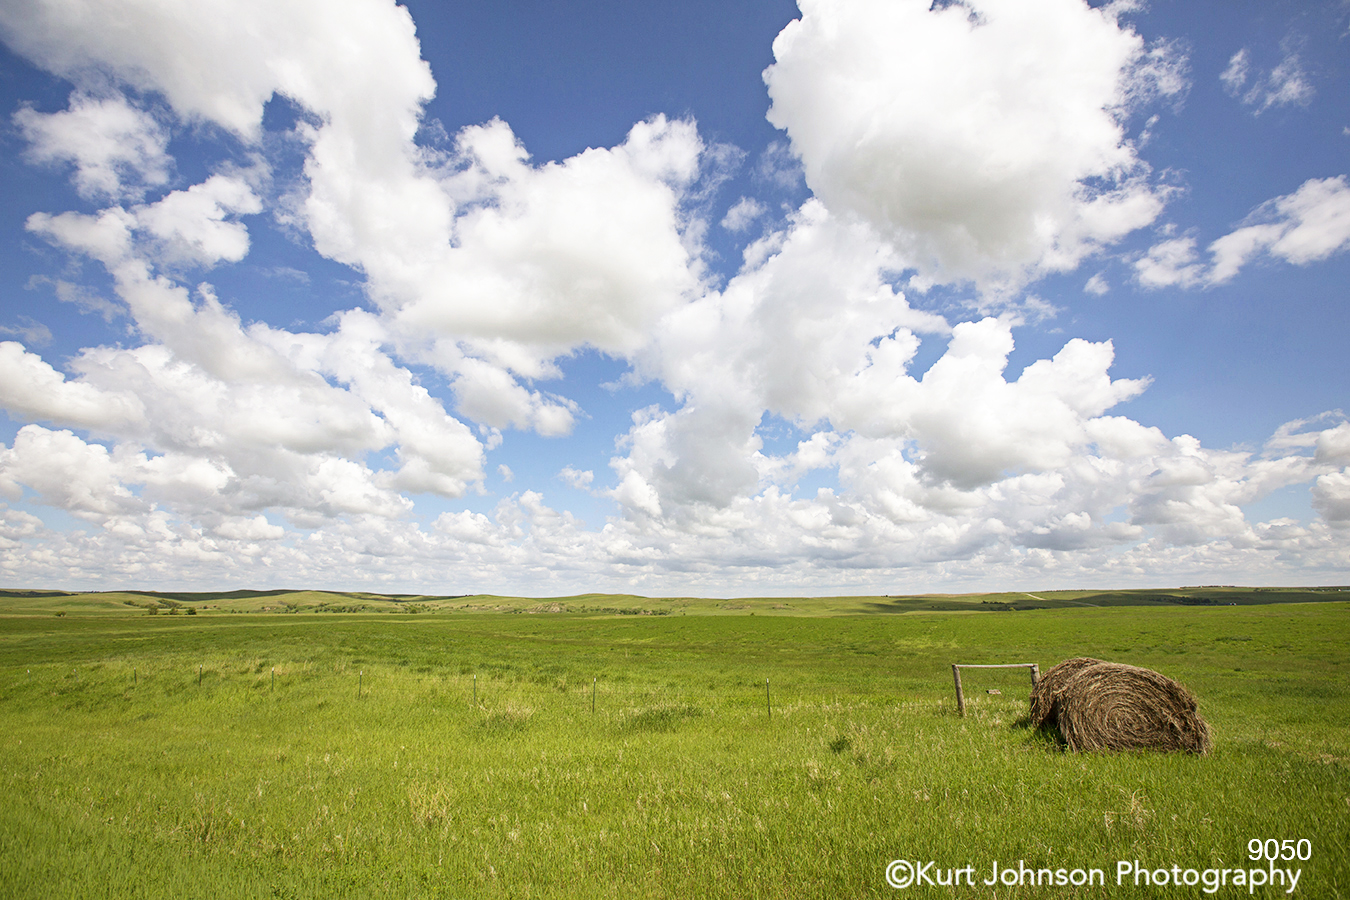 midwest hay bale blue sky clouds green grass field farm country landscape